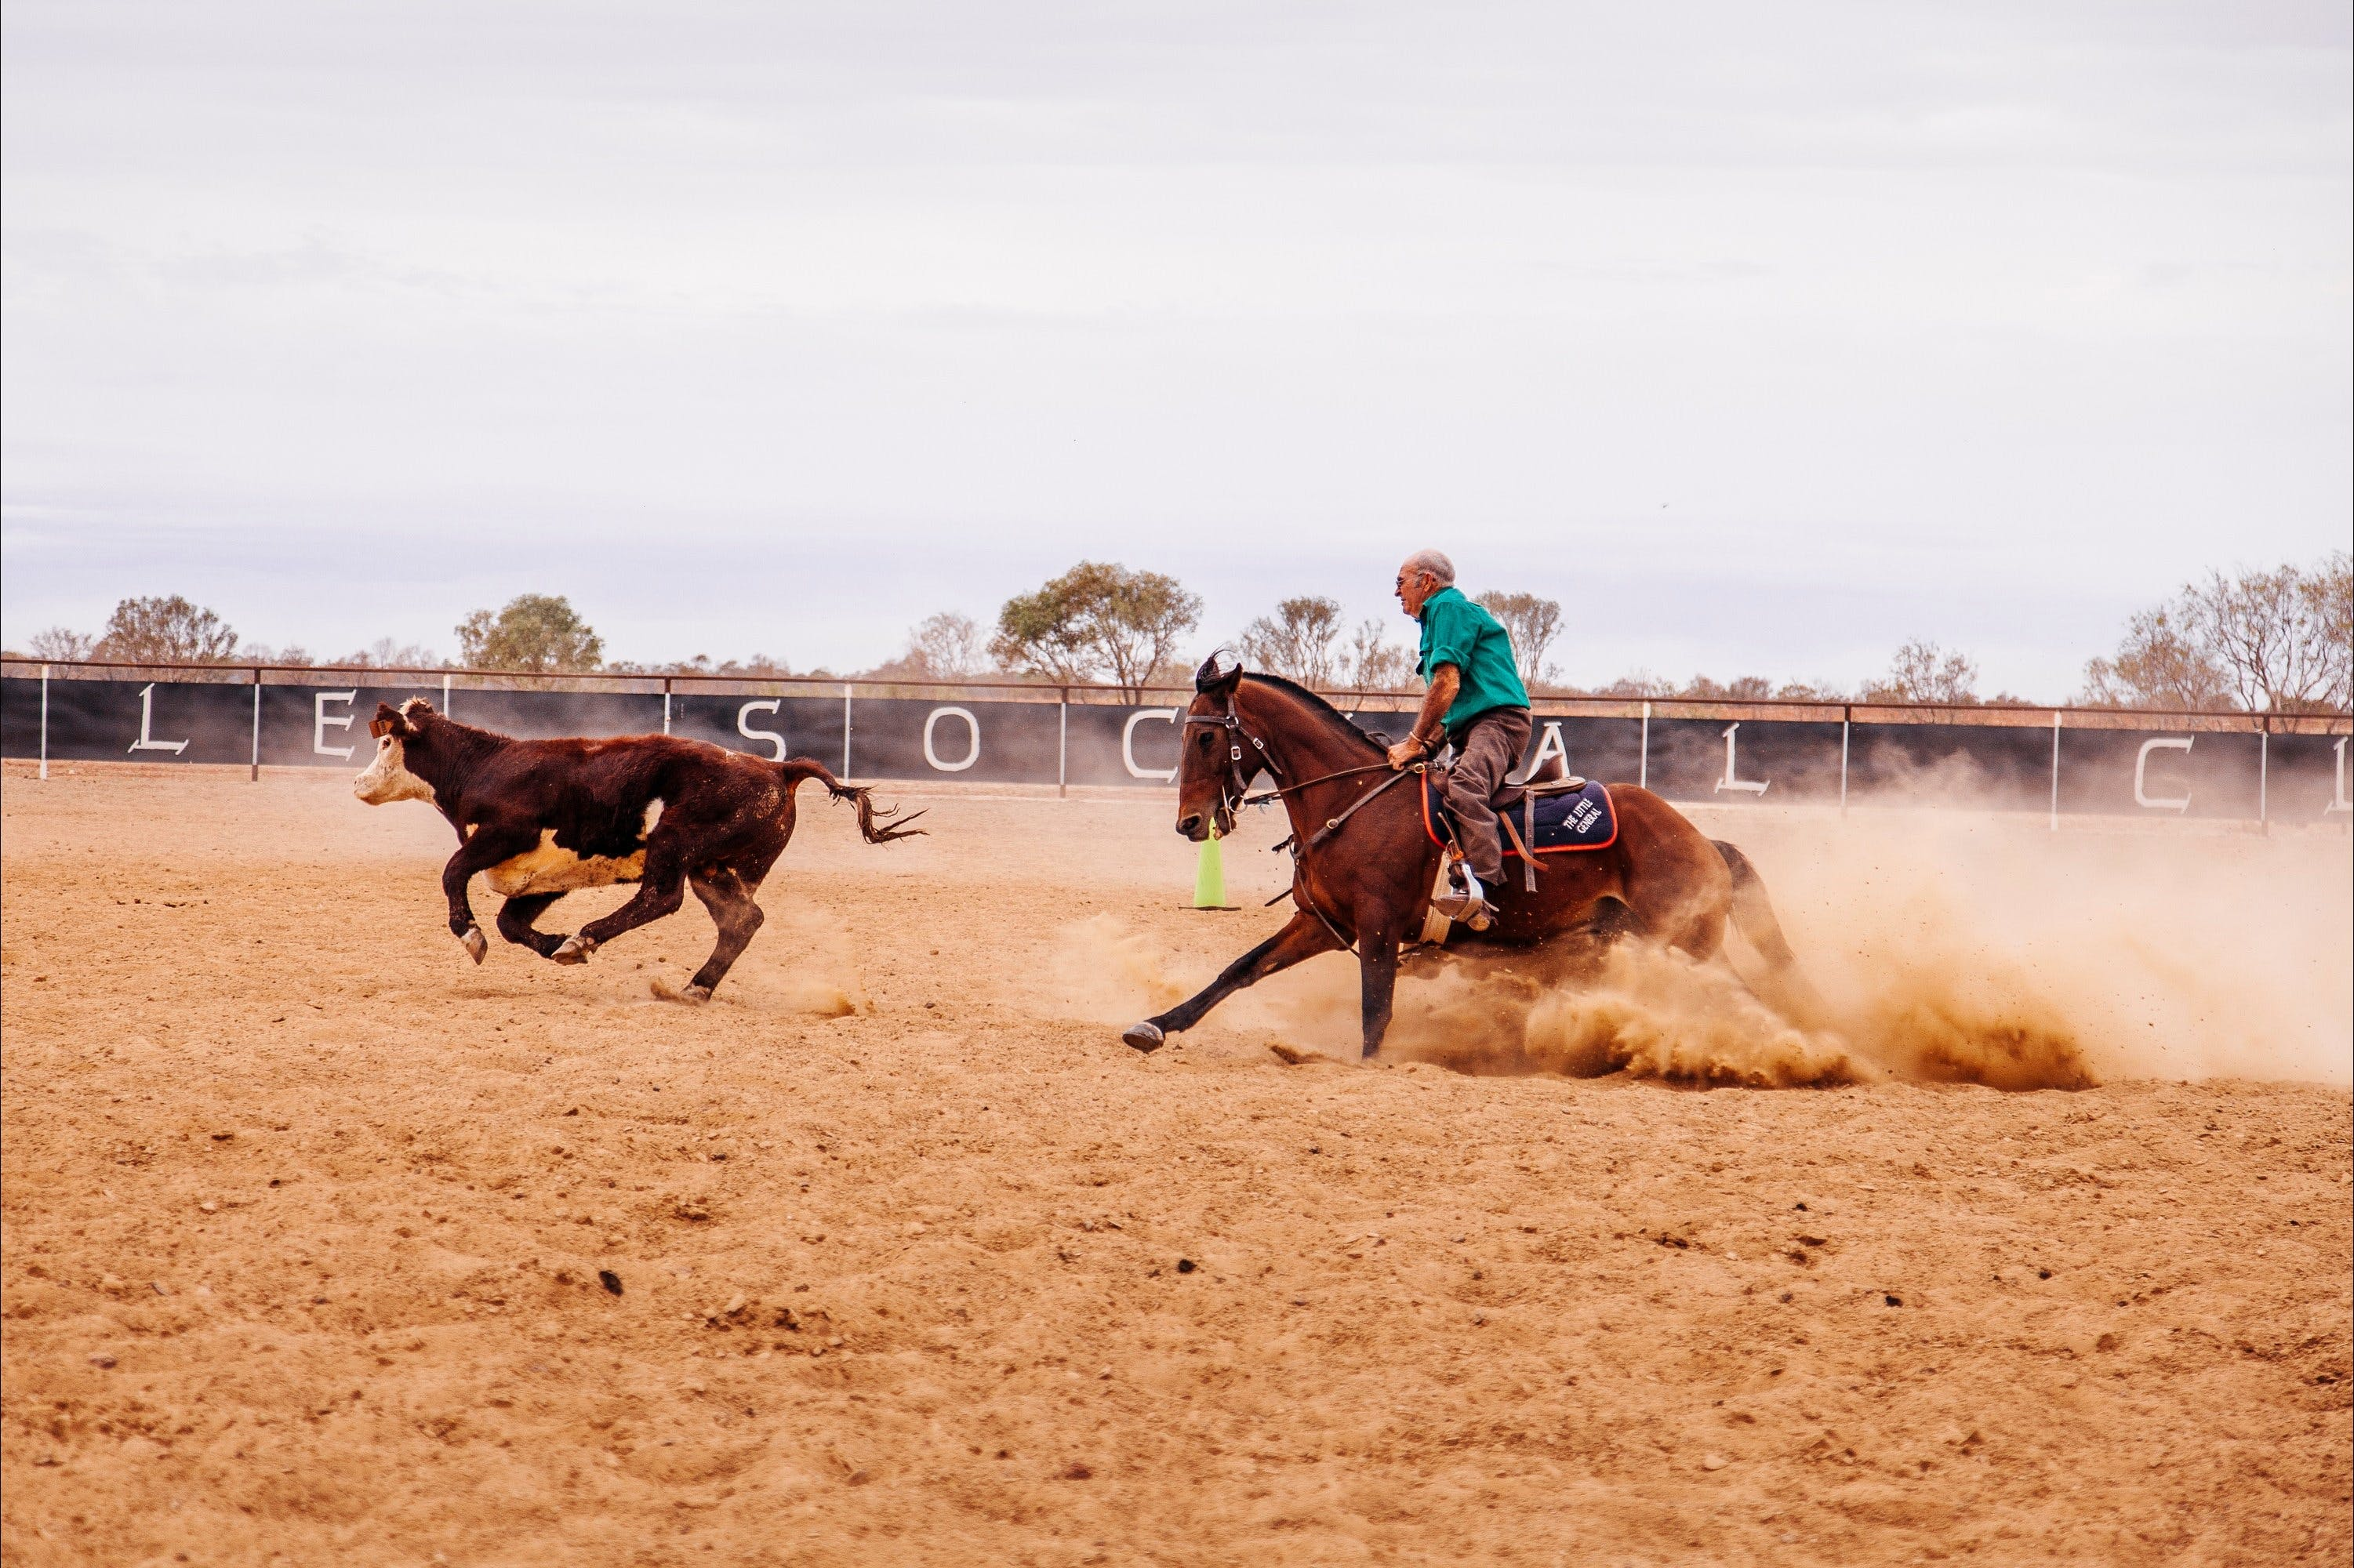 Birdsville Campdraft  Rodeo and Bronco Branding - Pubs and Clubs